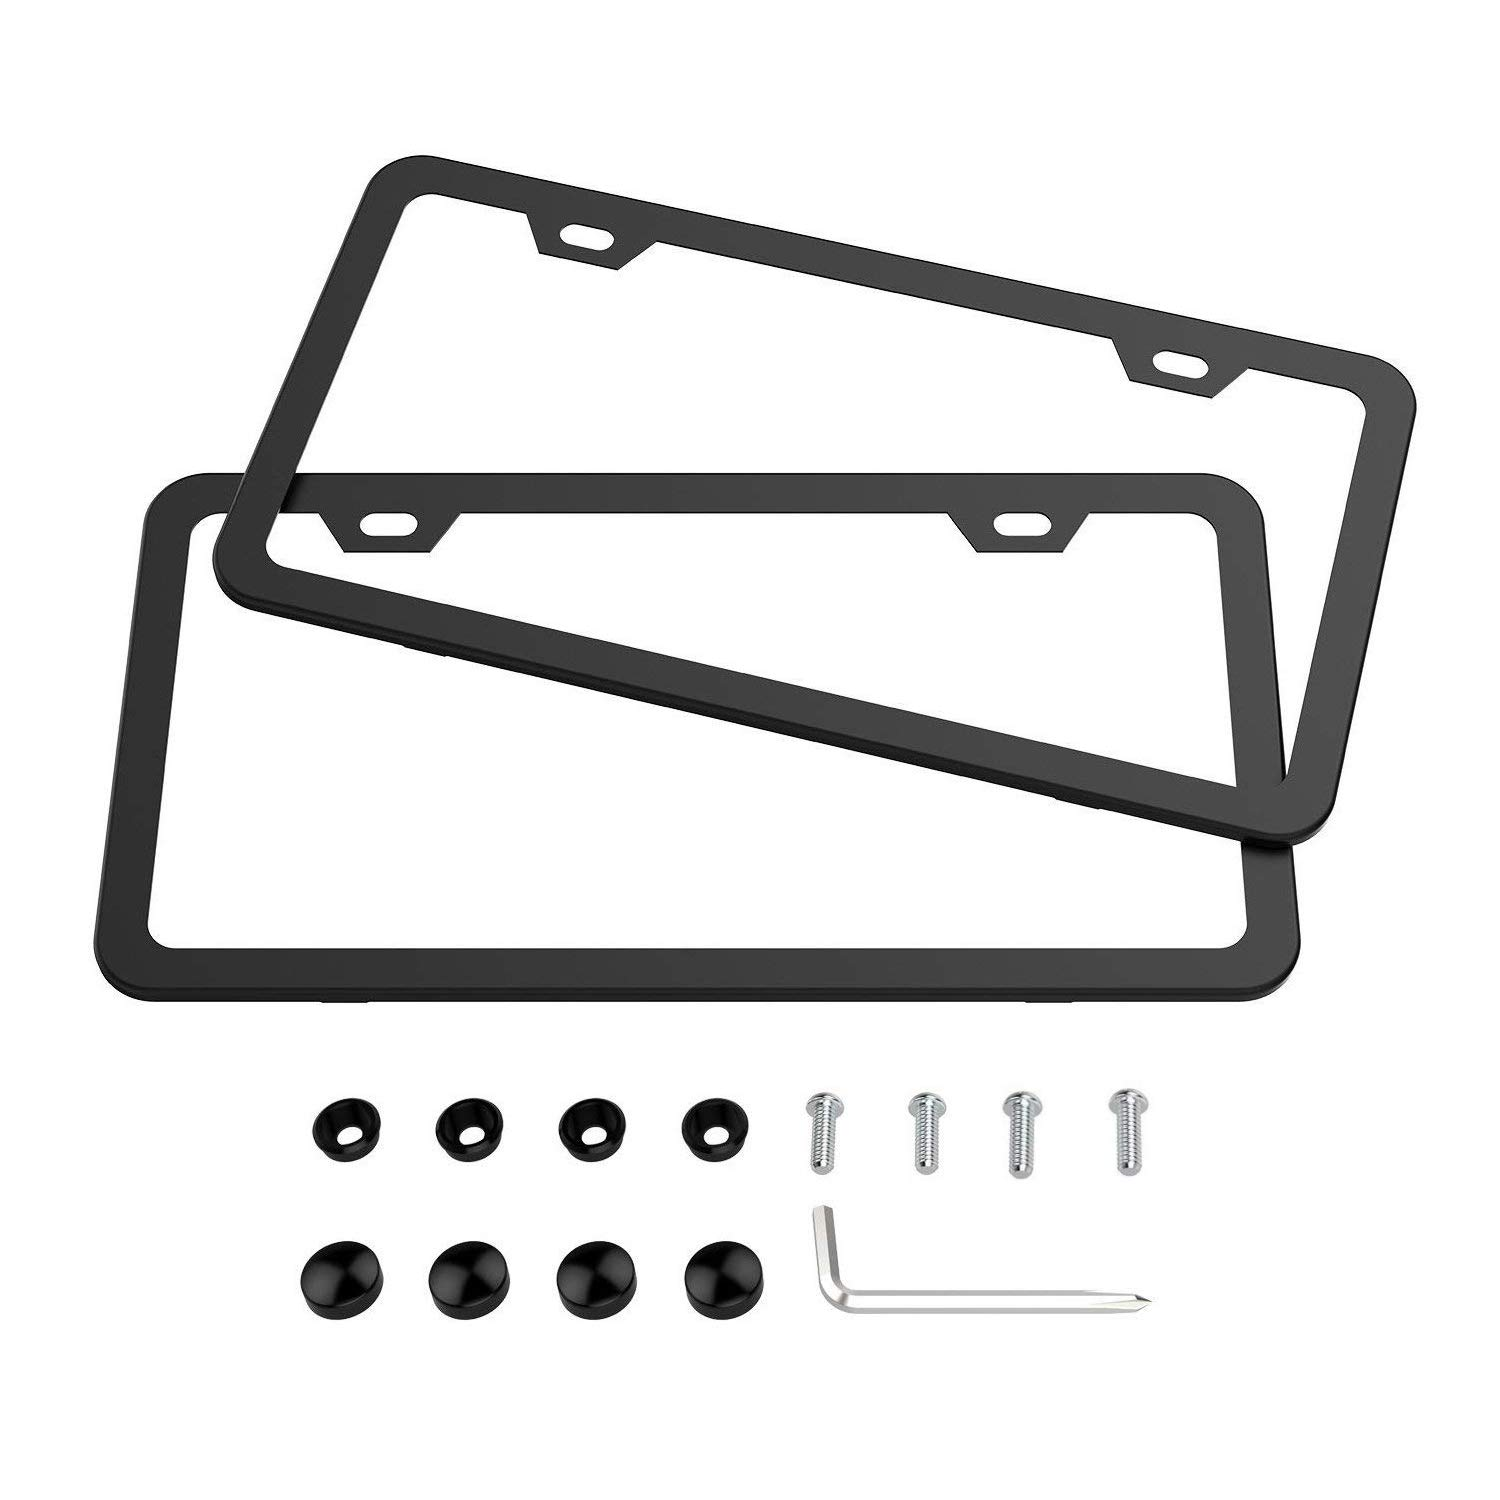 Best tag frames for cars | Amazon.com